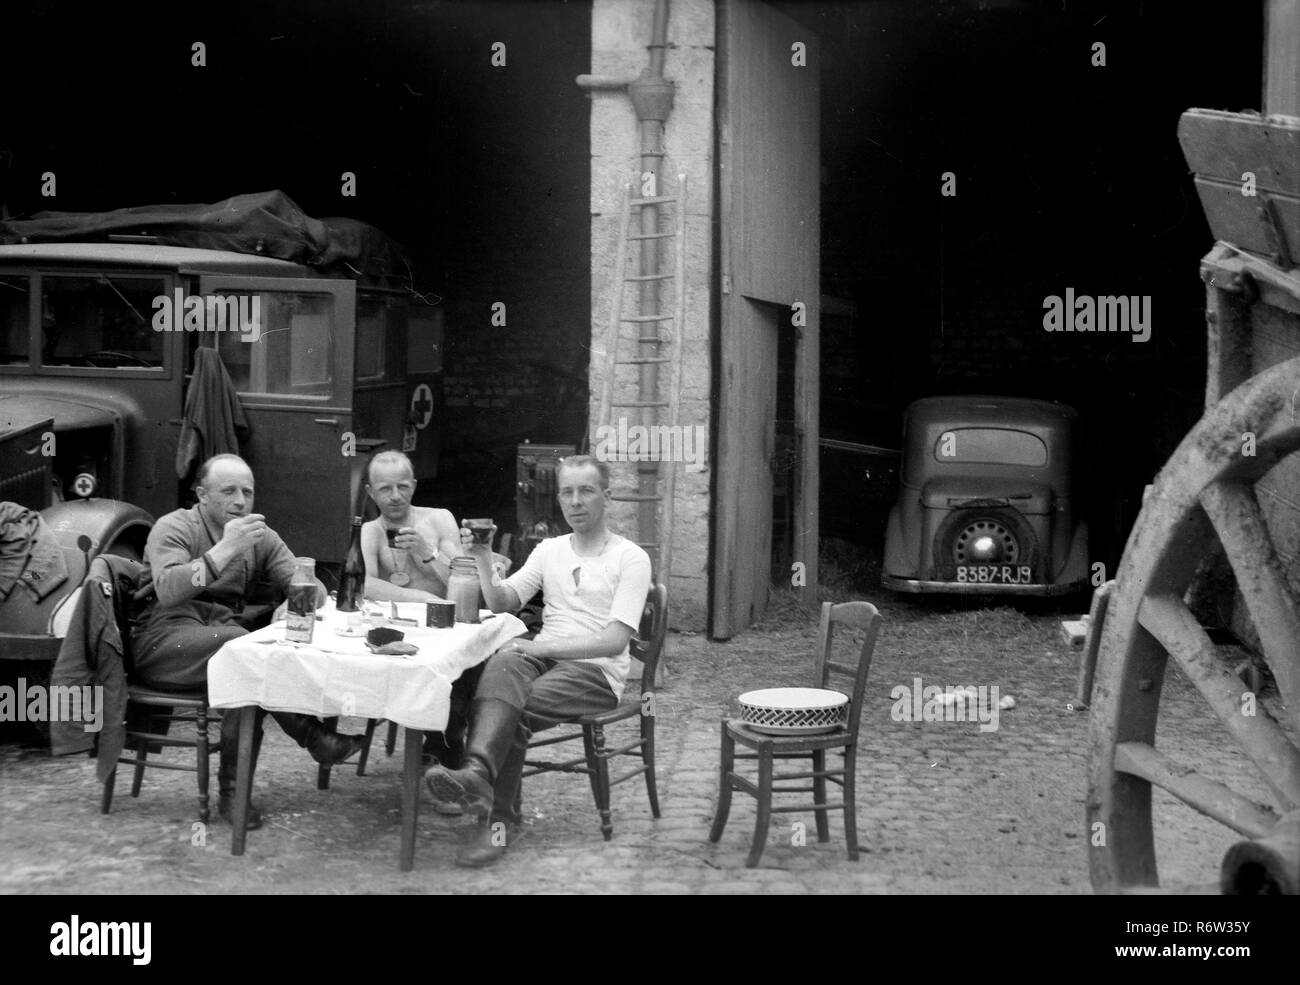 1940 WW2 German Army Soldiersrelaxing off duty in northern France - Stock Image